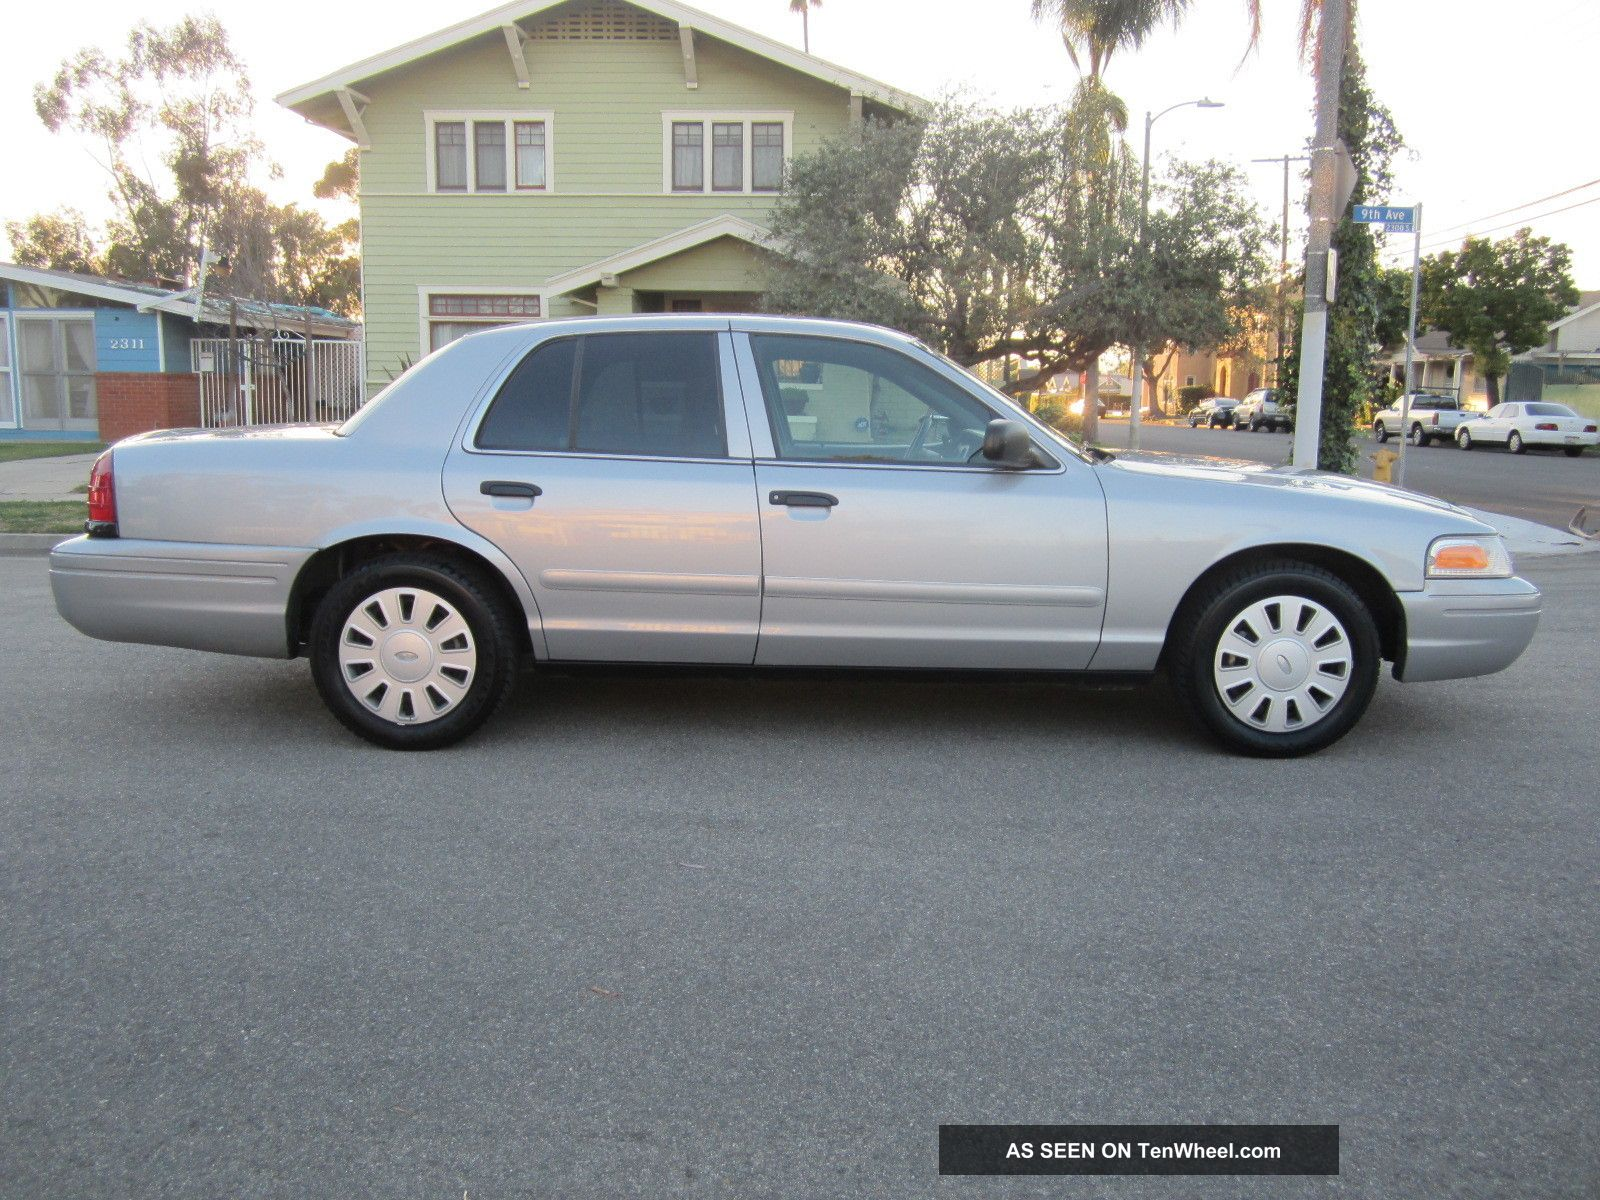 2008 Ford Crown Victoria photo - 4